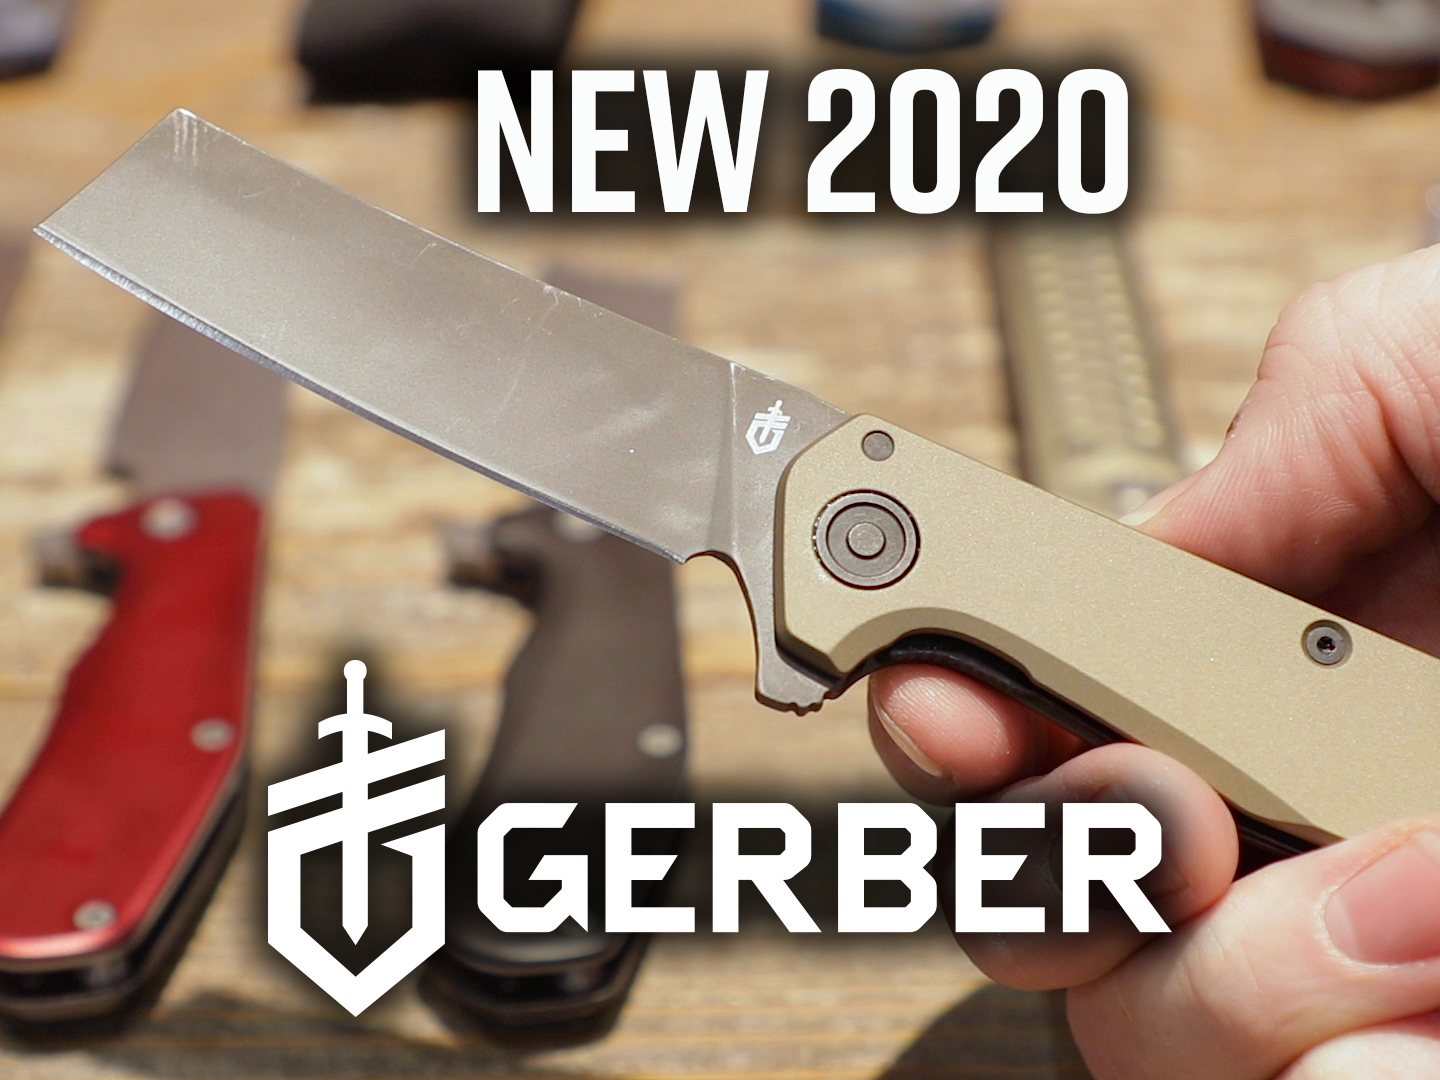 New 2020 Gerber knives, featuring Gerber Fastball